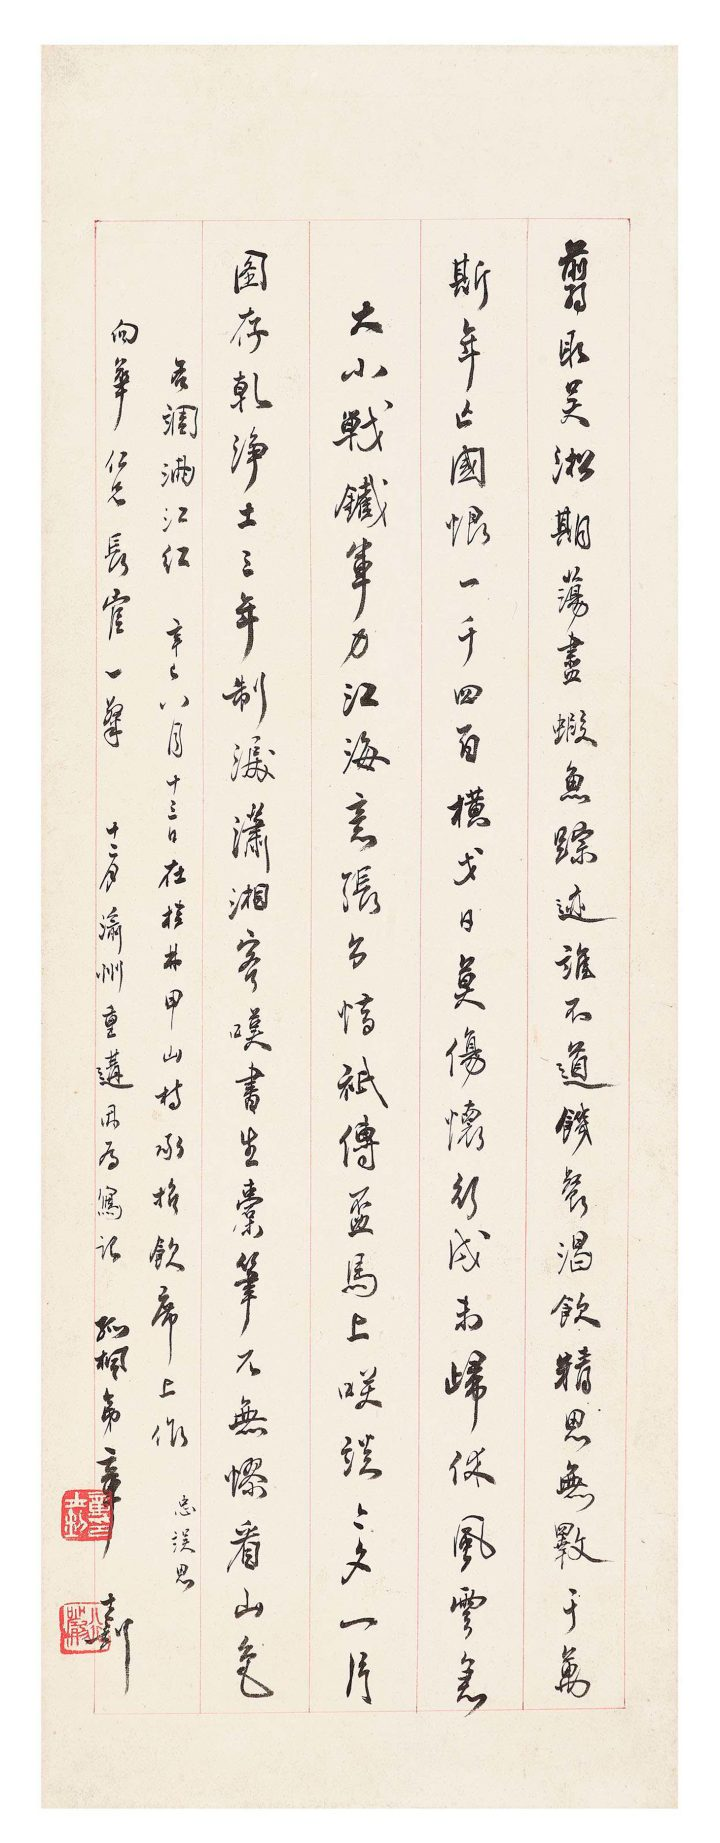 """Zhang Shizhao, """"Calligraphy in Running Script"""" (1941), scroll, mounted and framed, ink on paper, 30 3/4 x 11 inches (image courtesy Christie's)"""